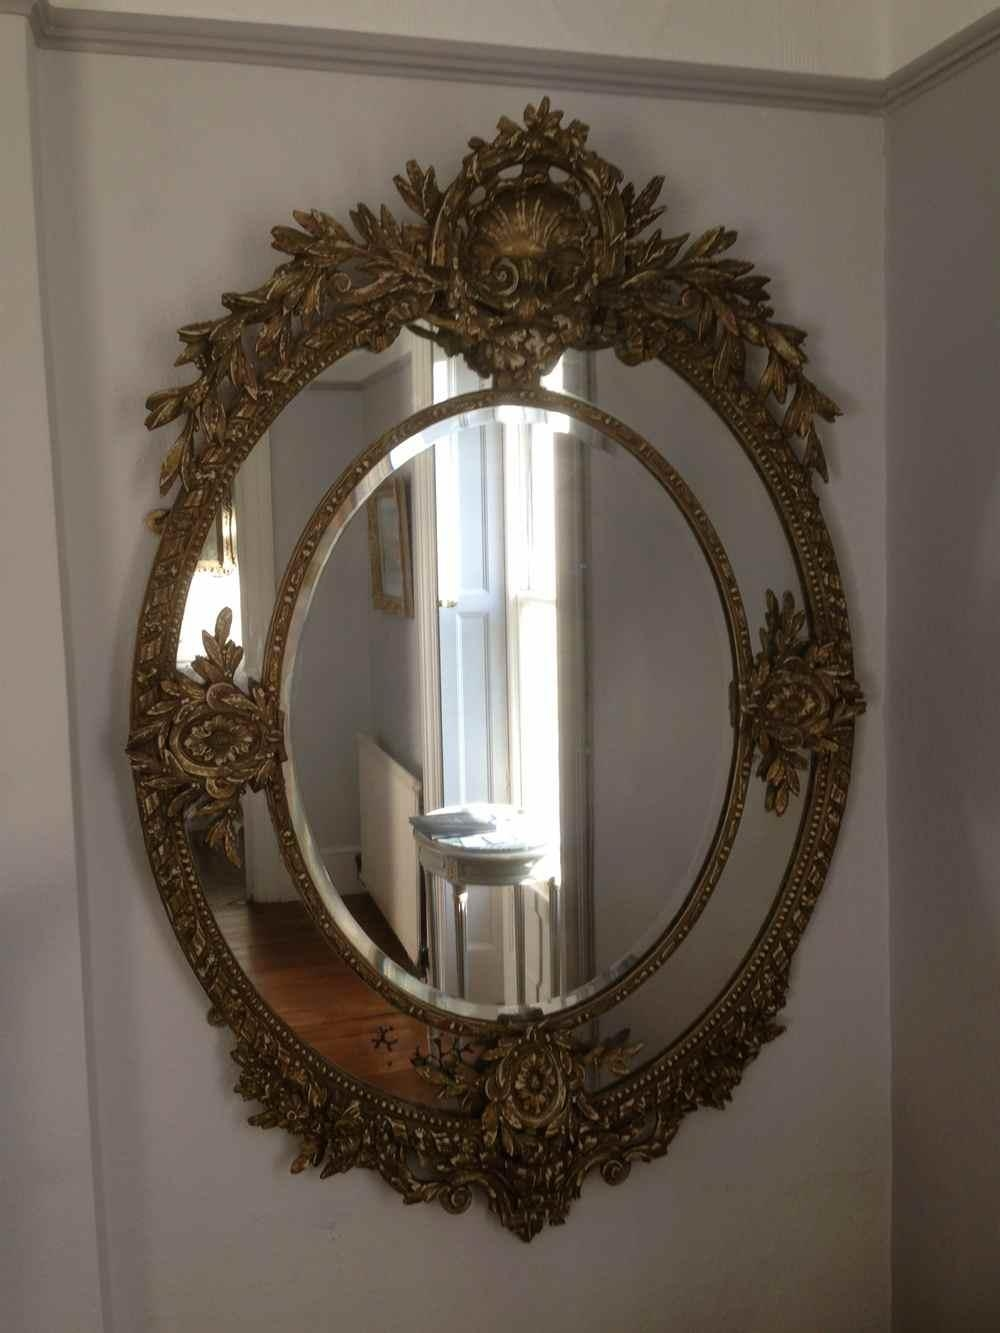 A Wonderful Large Antique 19Th Century French Carved Wood Oval Throughout Ornate French Mirrors (Image 6 of 20)